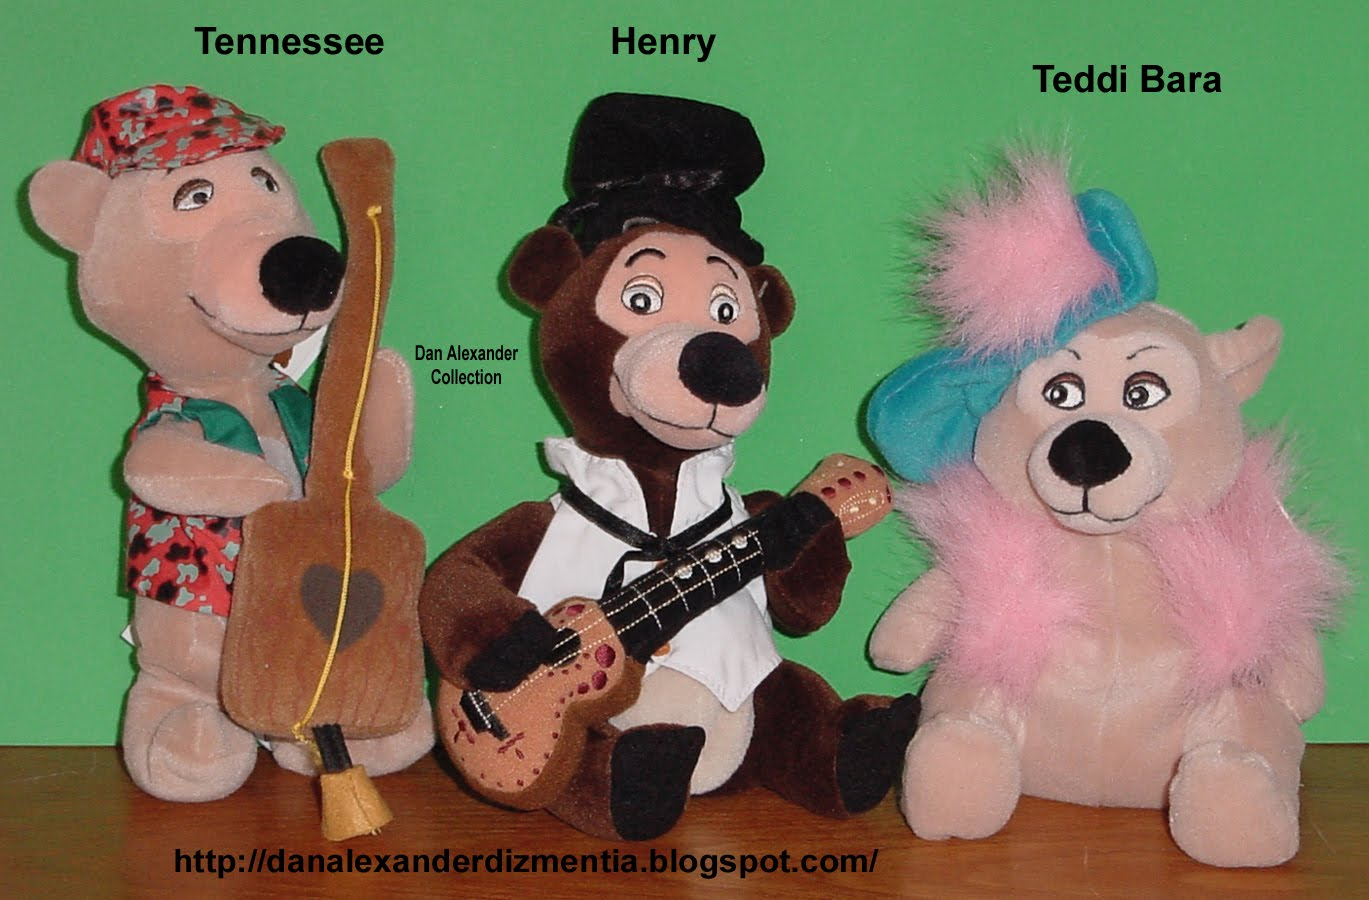 Henry is the master of ceremonies for the country bears in the